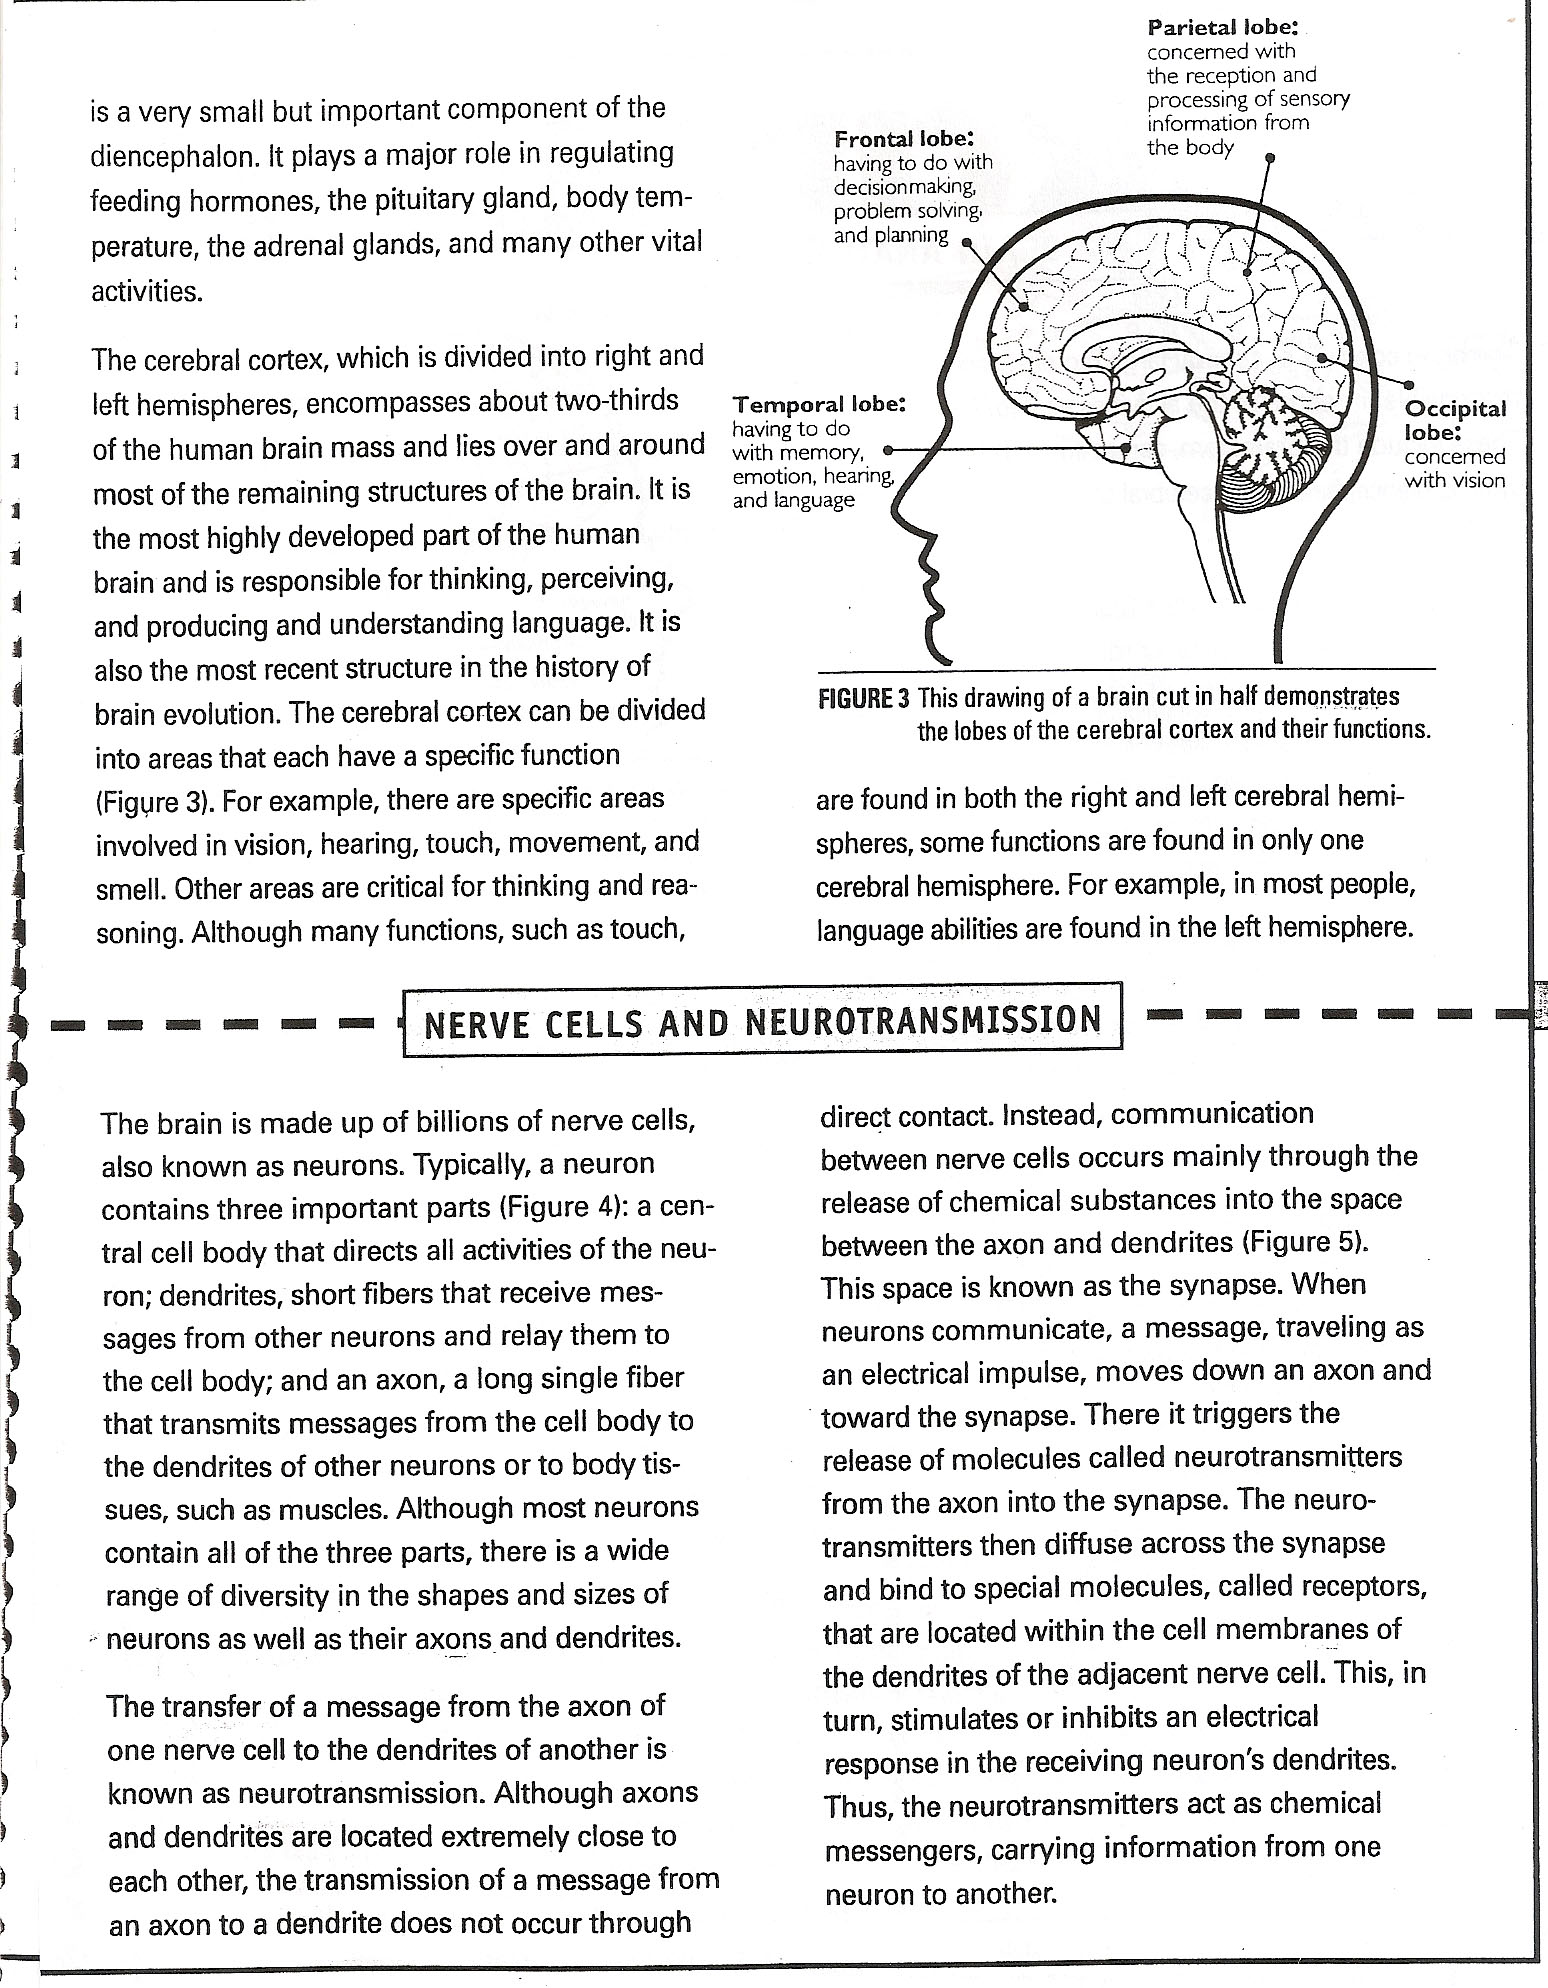 earjmsscience licensed for noncommercial use only Drugs and – Nervous System Worksheet